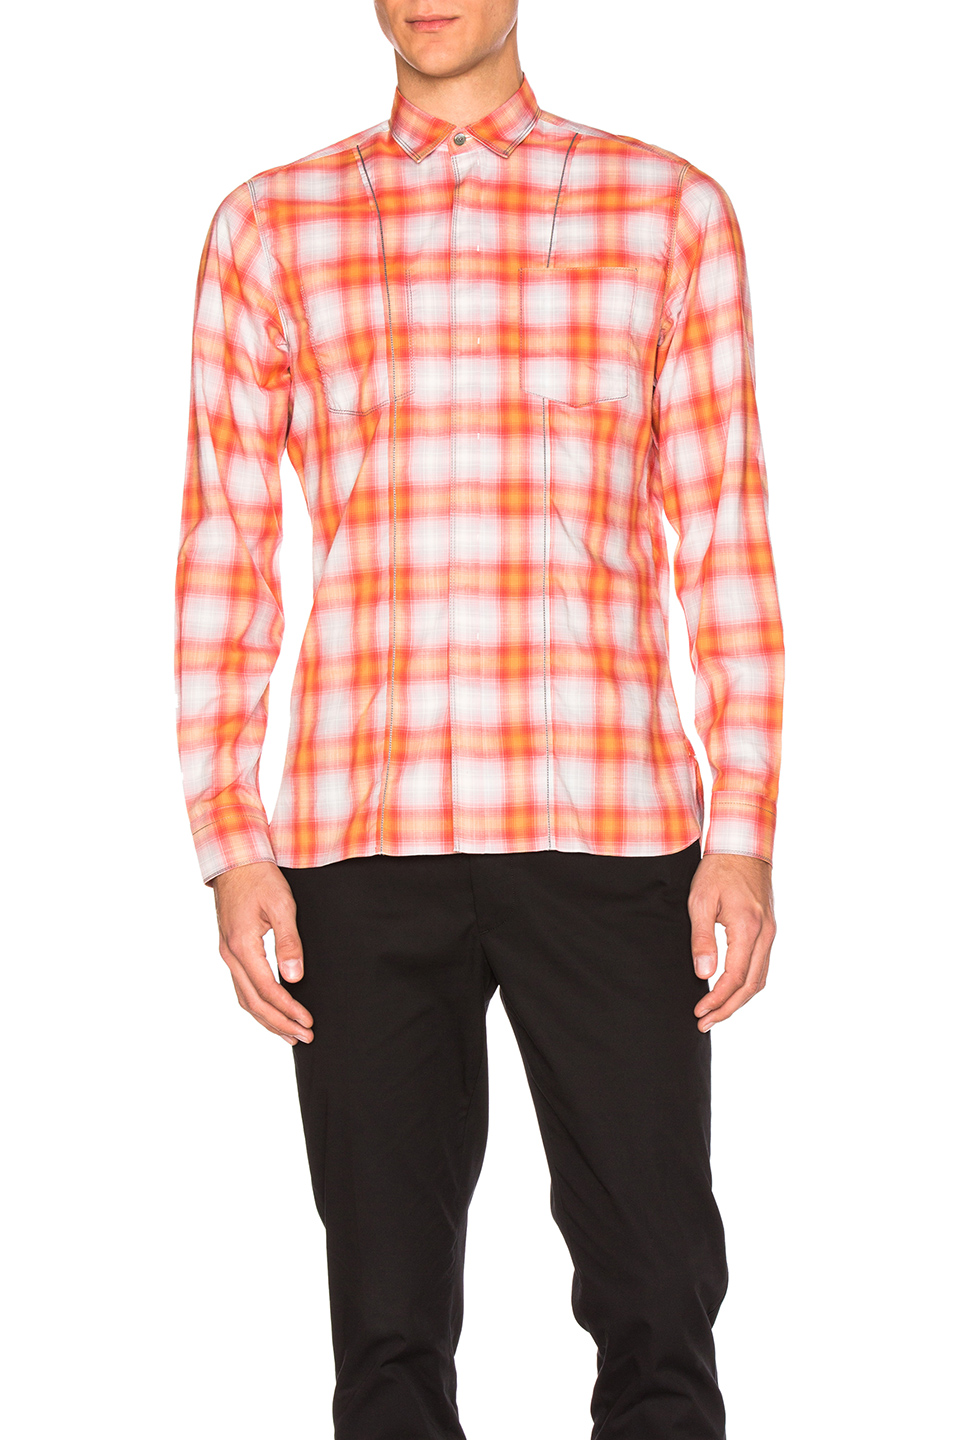 Lanvin Contrast Pocket Shirt in Orange,Checkered & Plaid